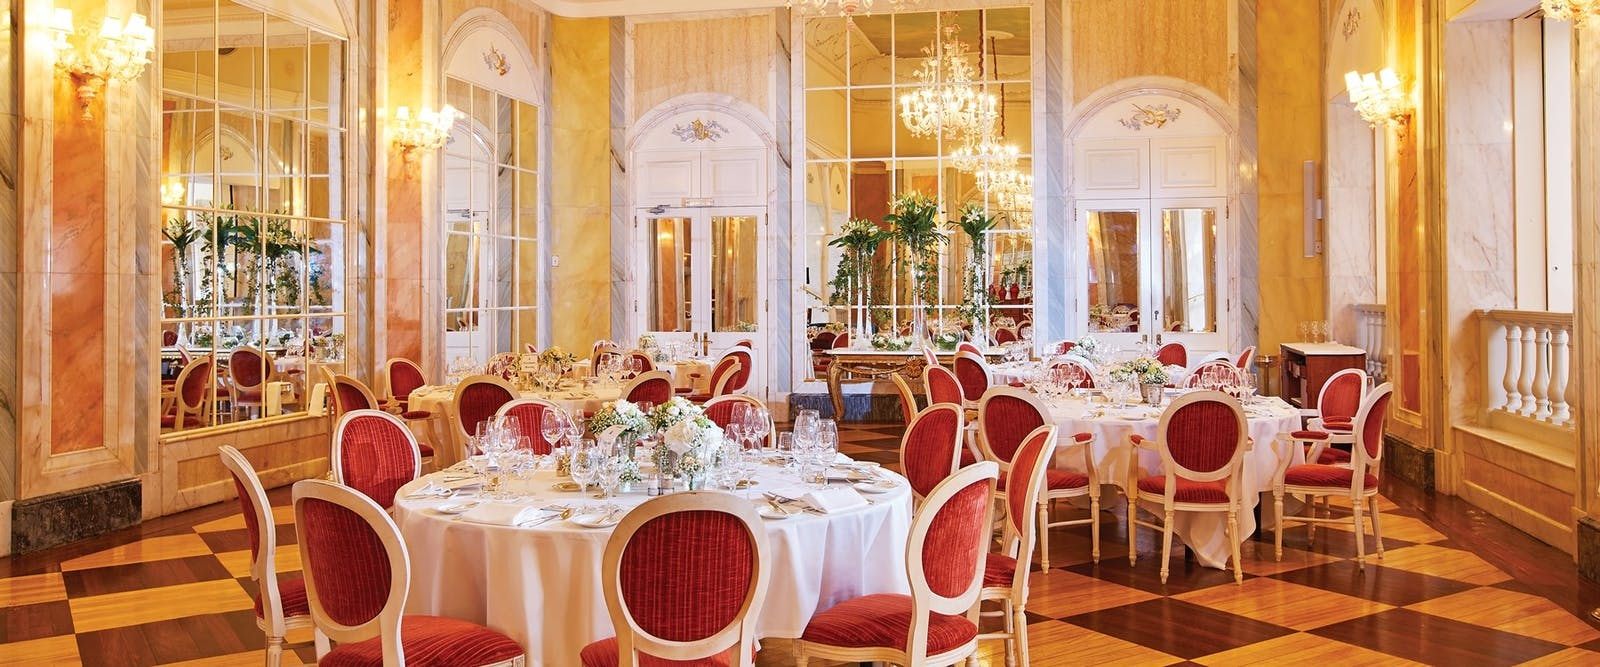 The Dining Room at Reid's Palace, A Belmond Hotel, Madeira, Portugal